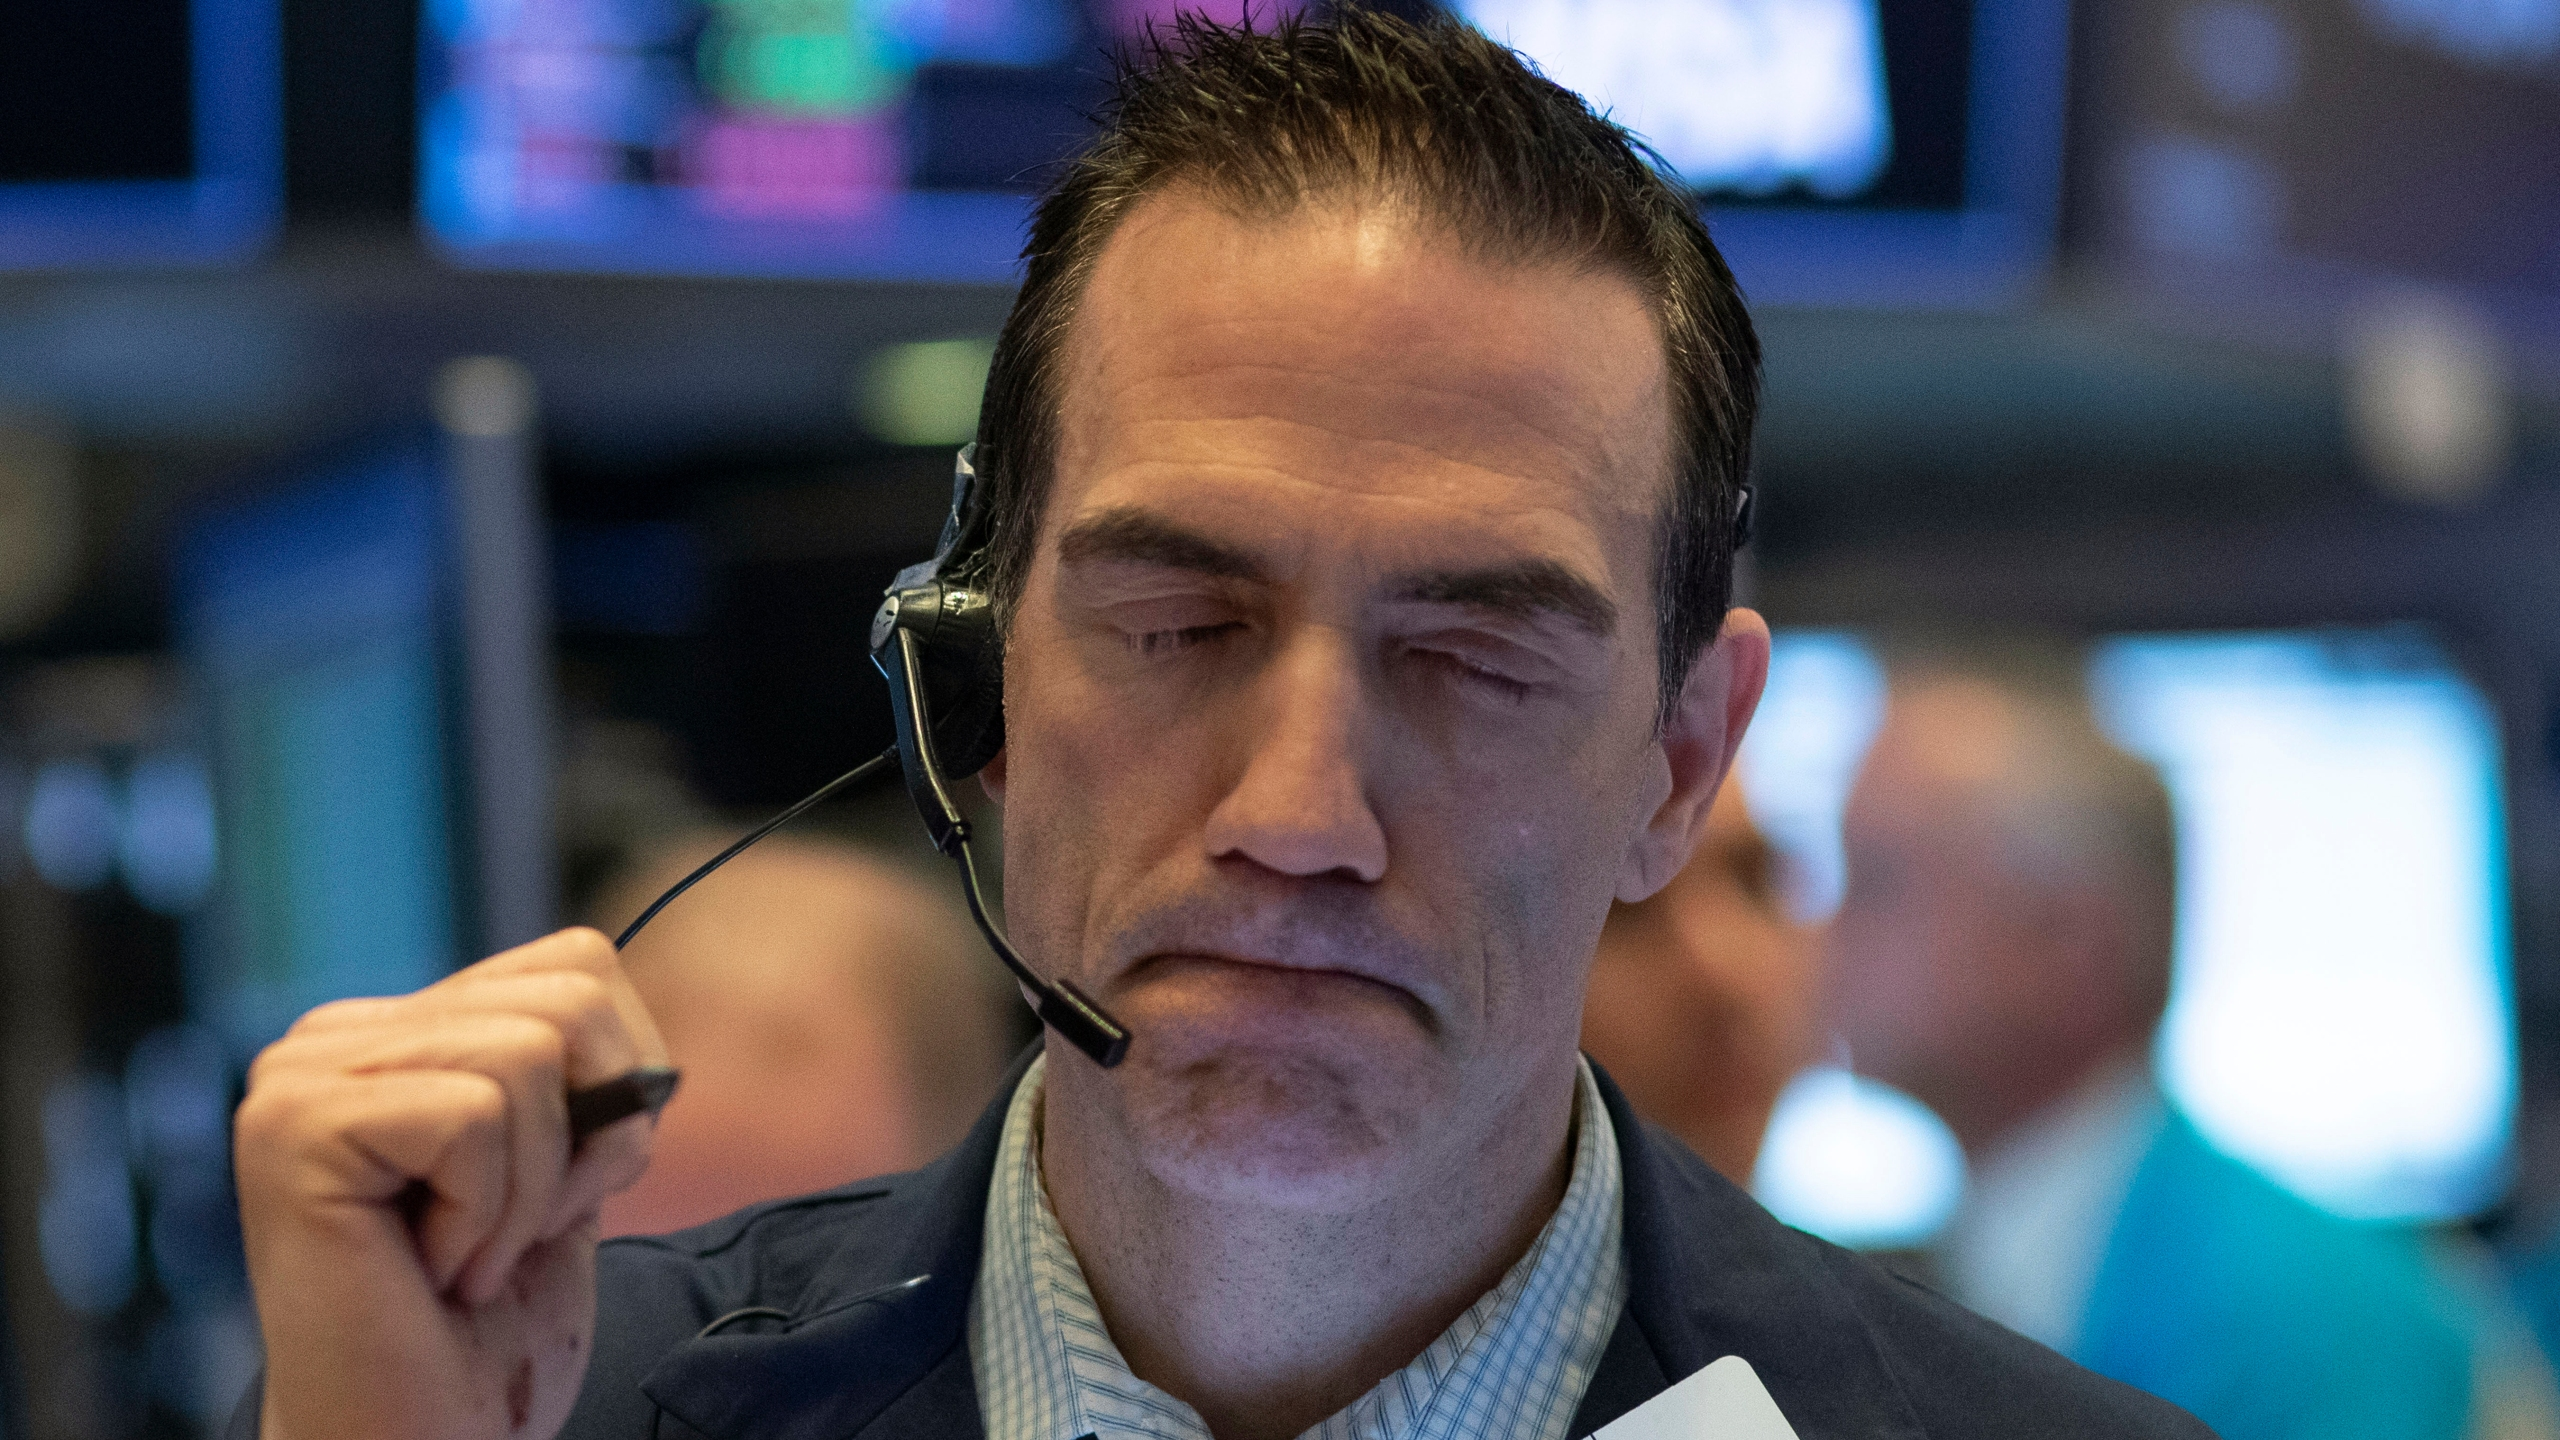 Stock trader Gregory Rowe works at the New York Stock Exchange, Wednesday, March 18, 2020 in New York. (AP Photo/Mark Lennihan)